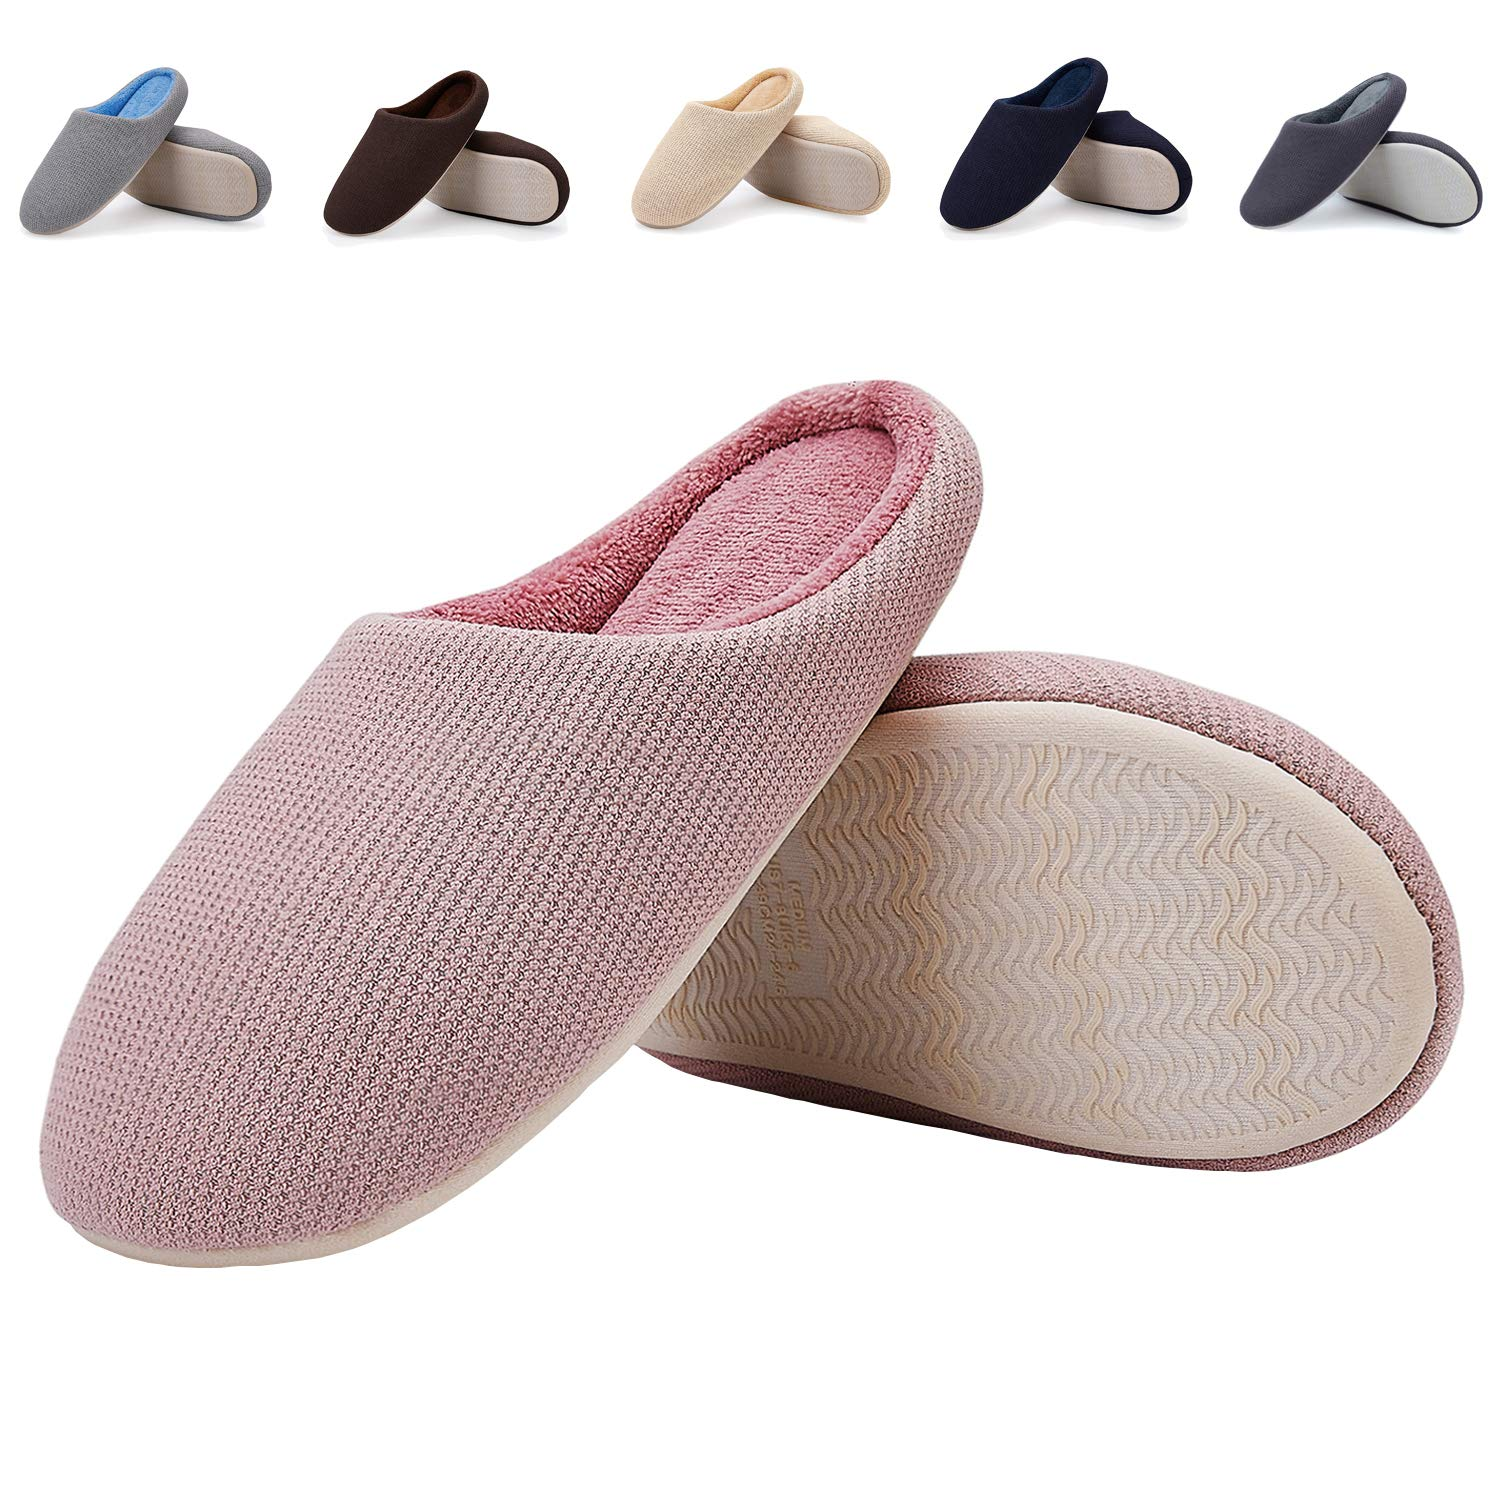 EASTSURE Women Indoor Slippers Memory Foam House Shoes with Anti-Slip Sole,Pink 40-41